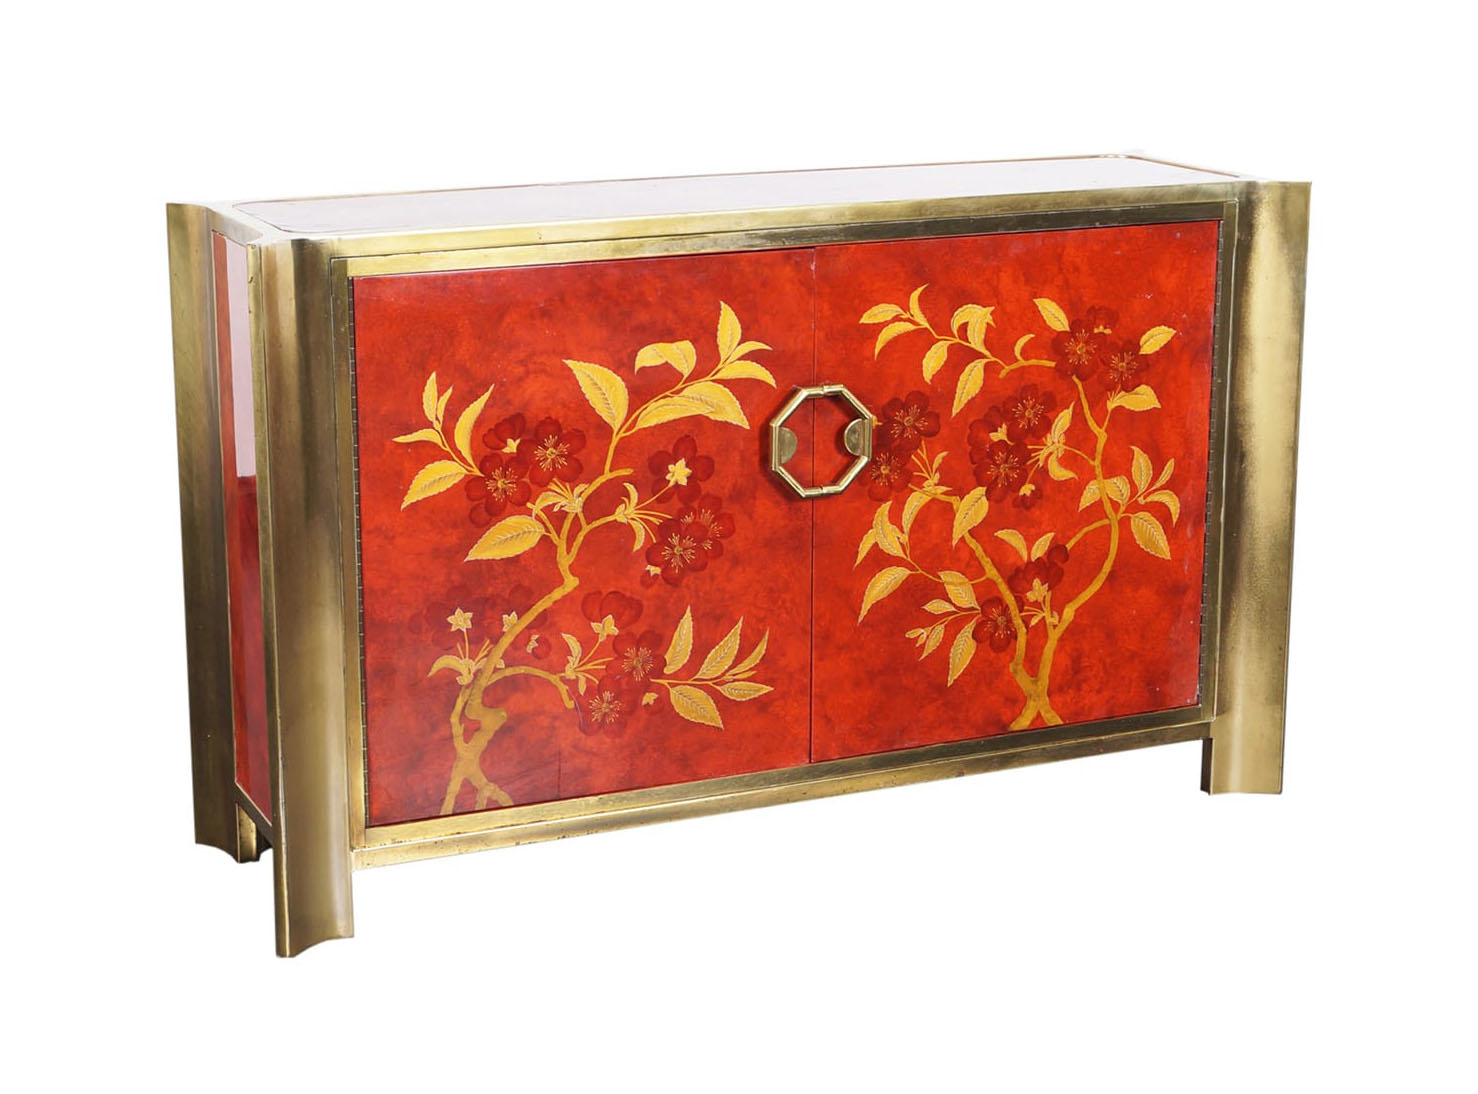 Exceptional Red Lacquered Credenza by Mastercraft